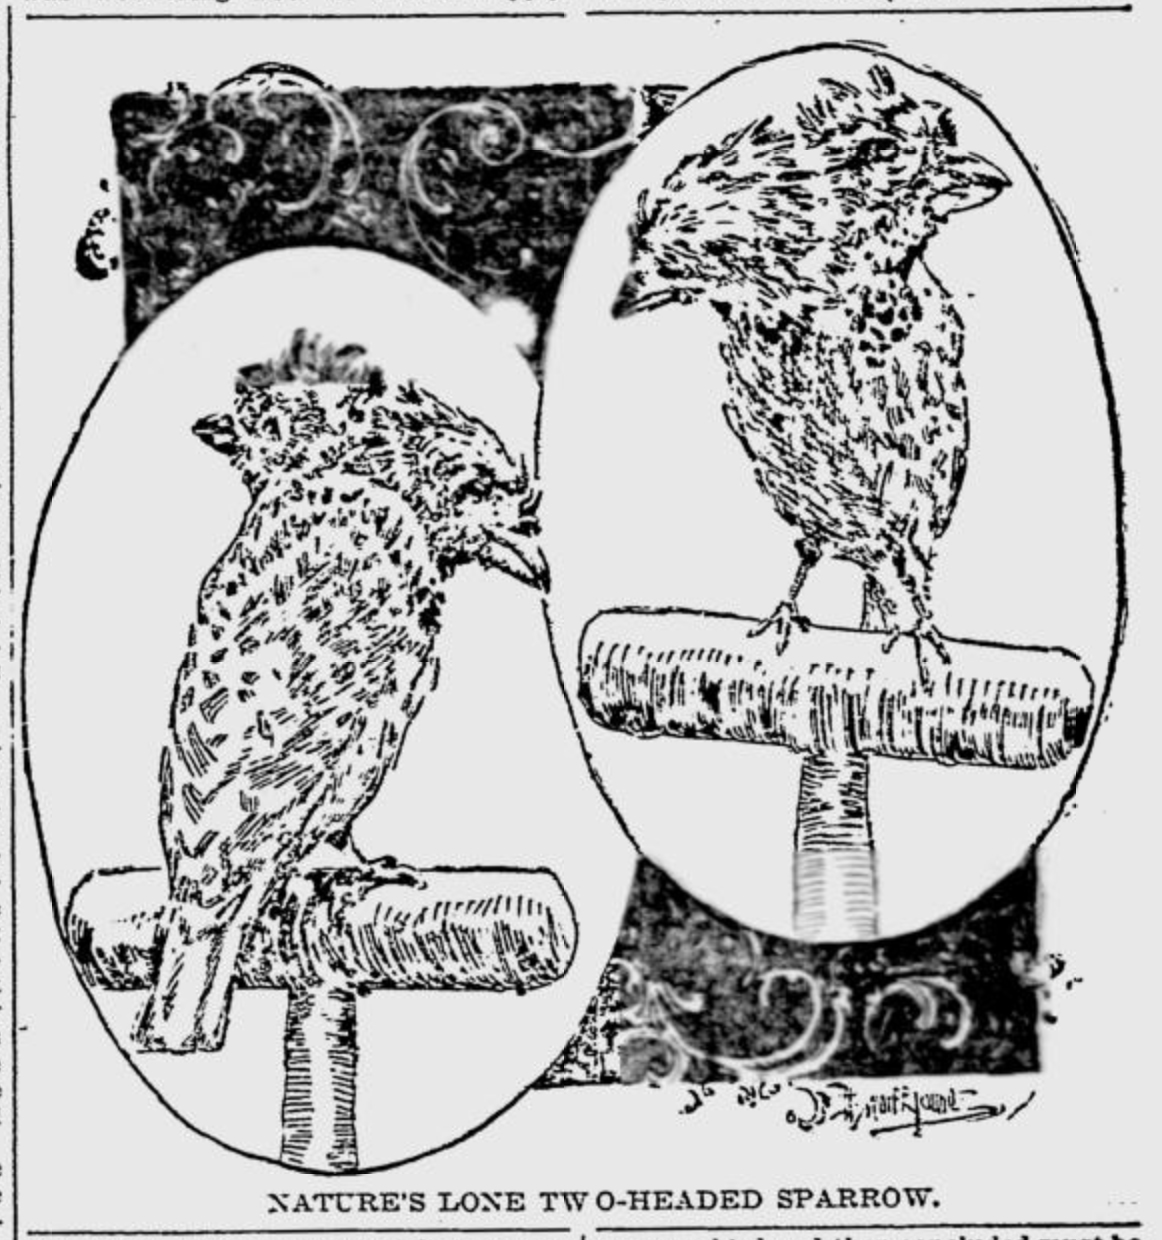 A two-headed sparrow, as seen in the Baltimore Sunday Herald, Jan. 9, 1898.